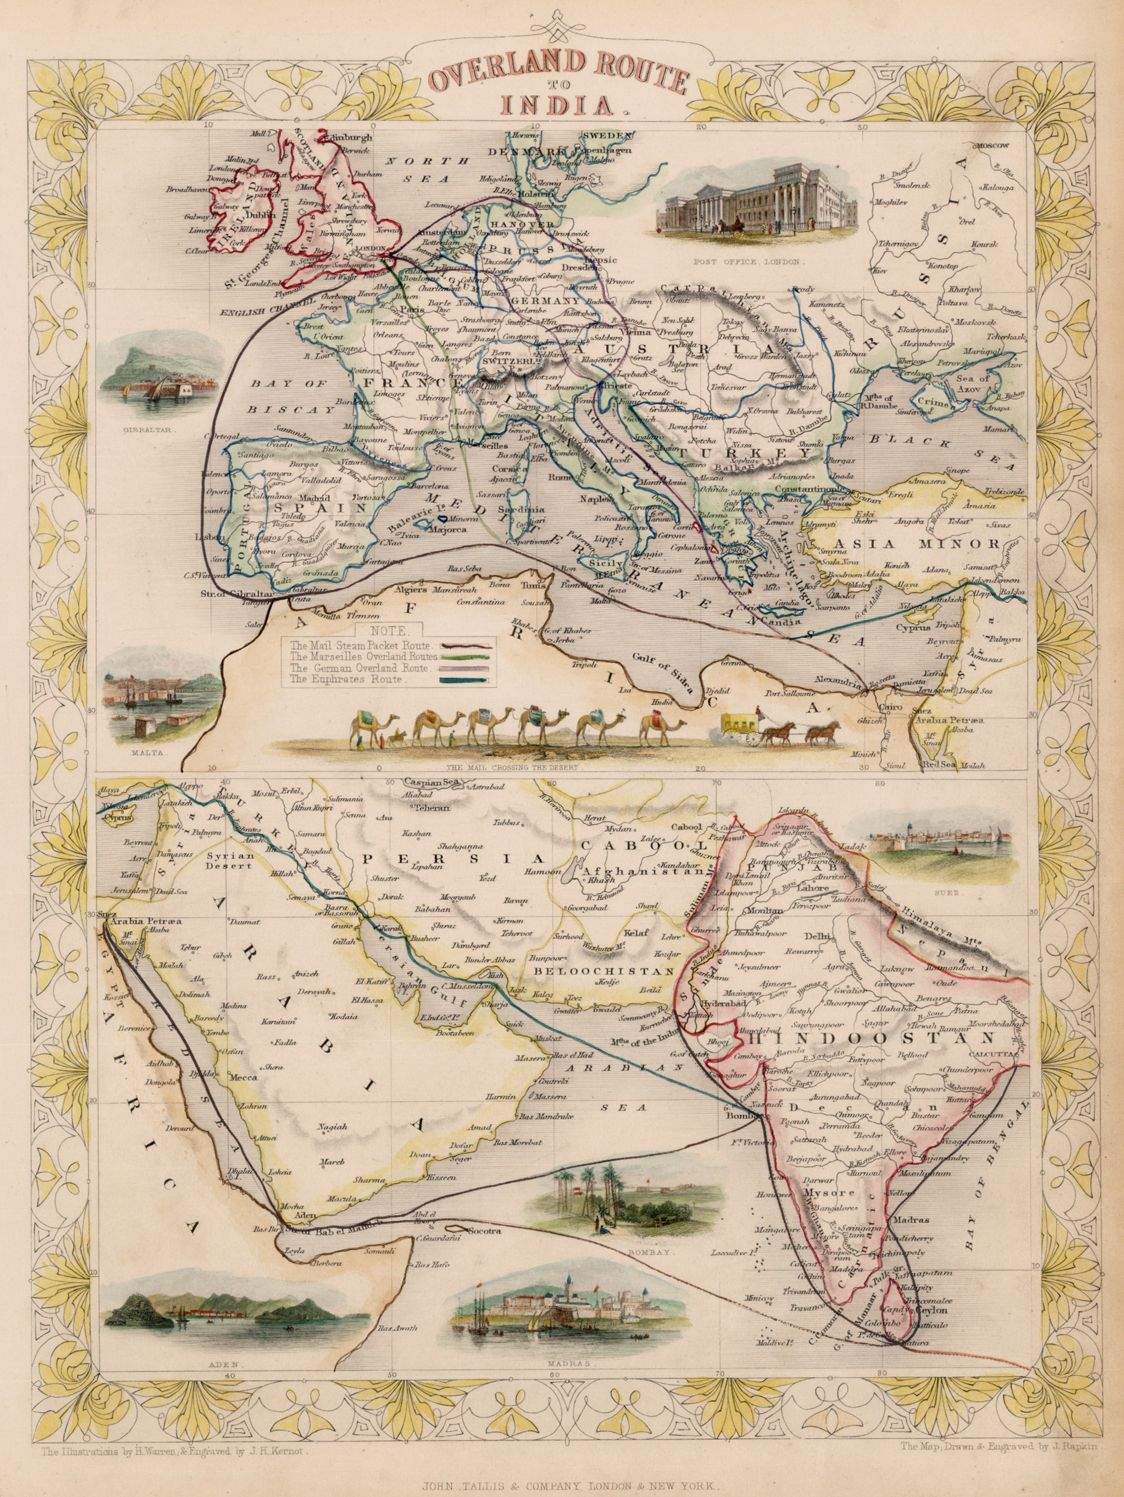 Overland route to india early 19th century map india maps overland route to india early 19th century map india gumiabroncs Gallery